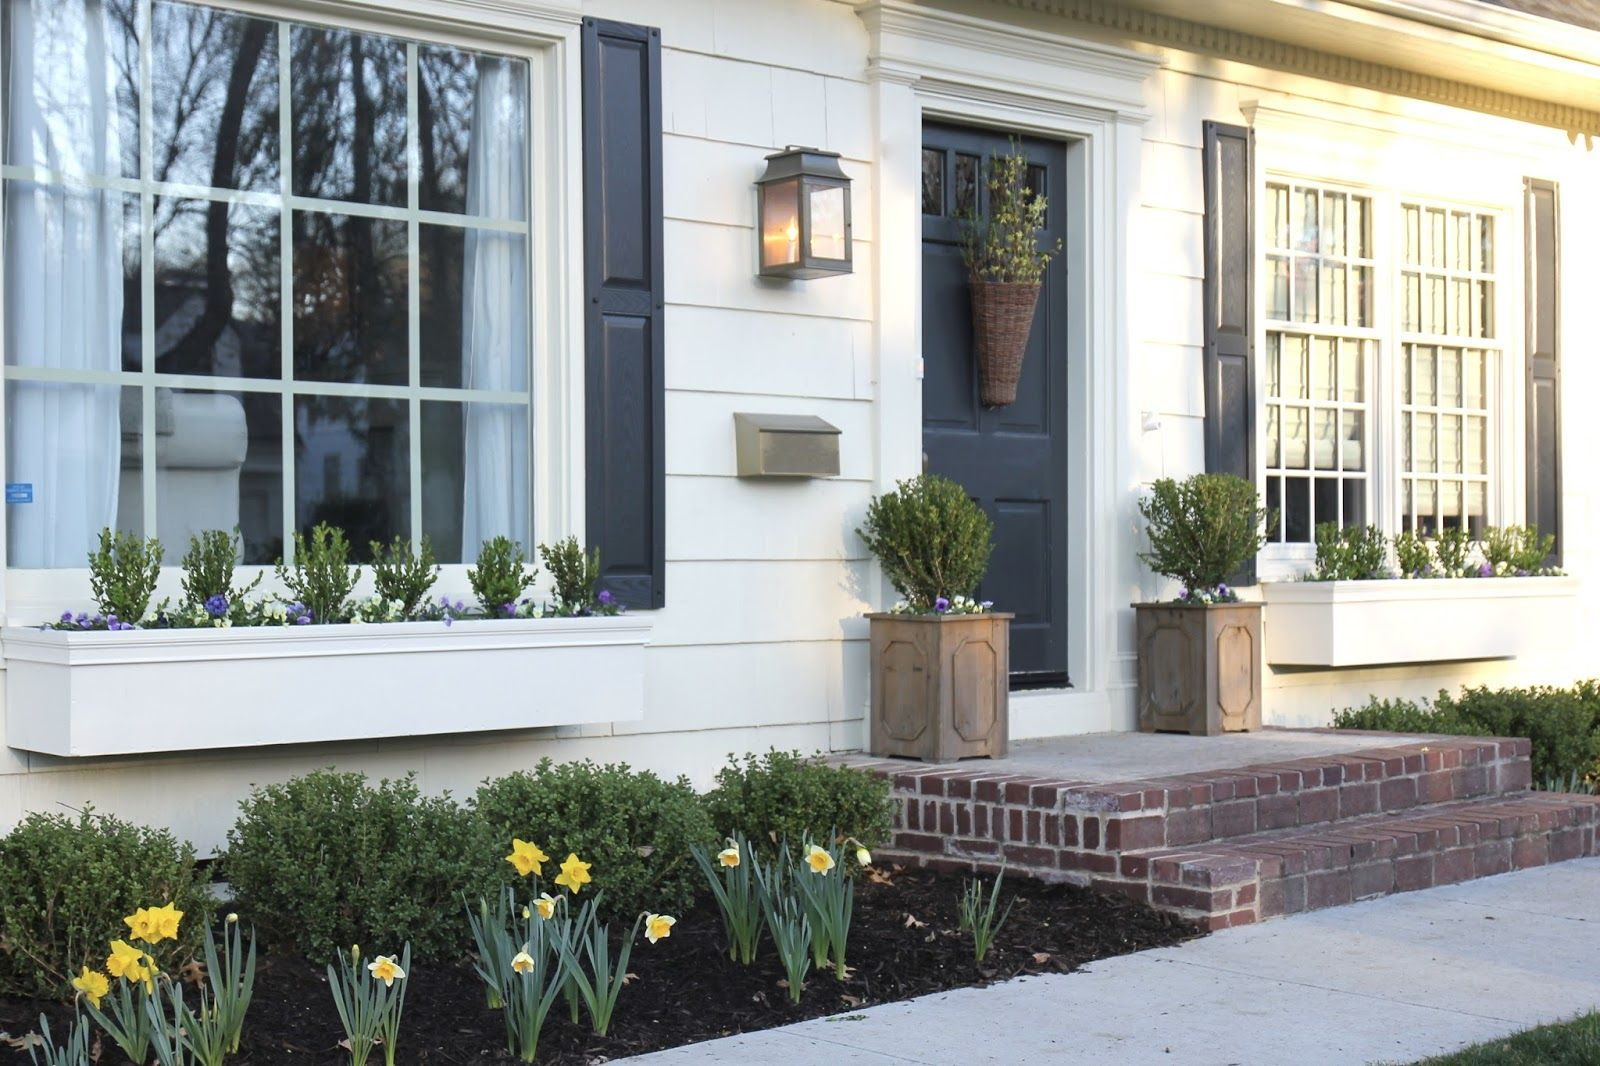 Window Boxes Diy Easy Flower Boxes Window Boxes Are Transformative For A House Instantly Giving Cha Window Boxes Diy Window Planter Boxes Window Box Flowers